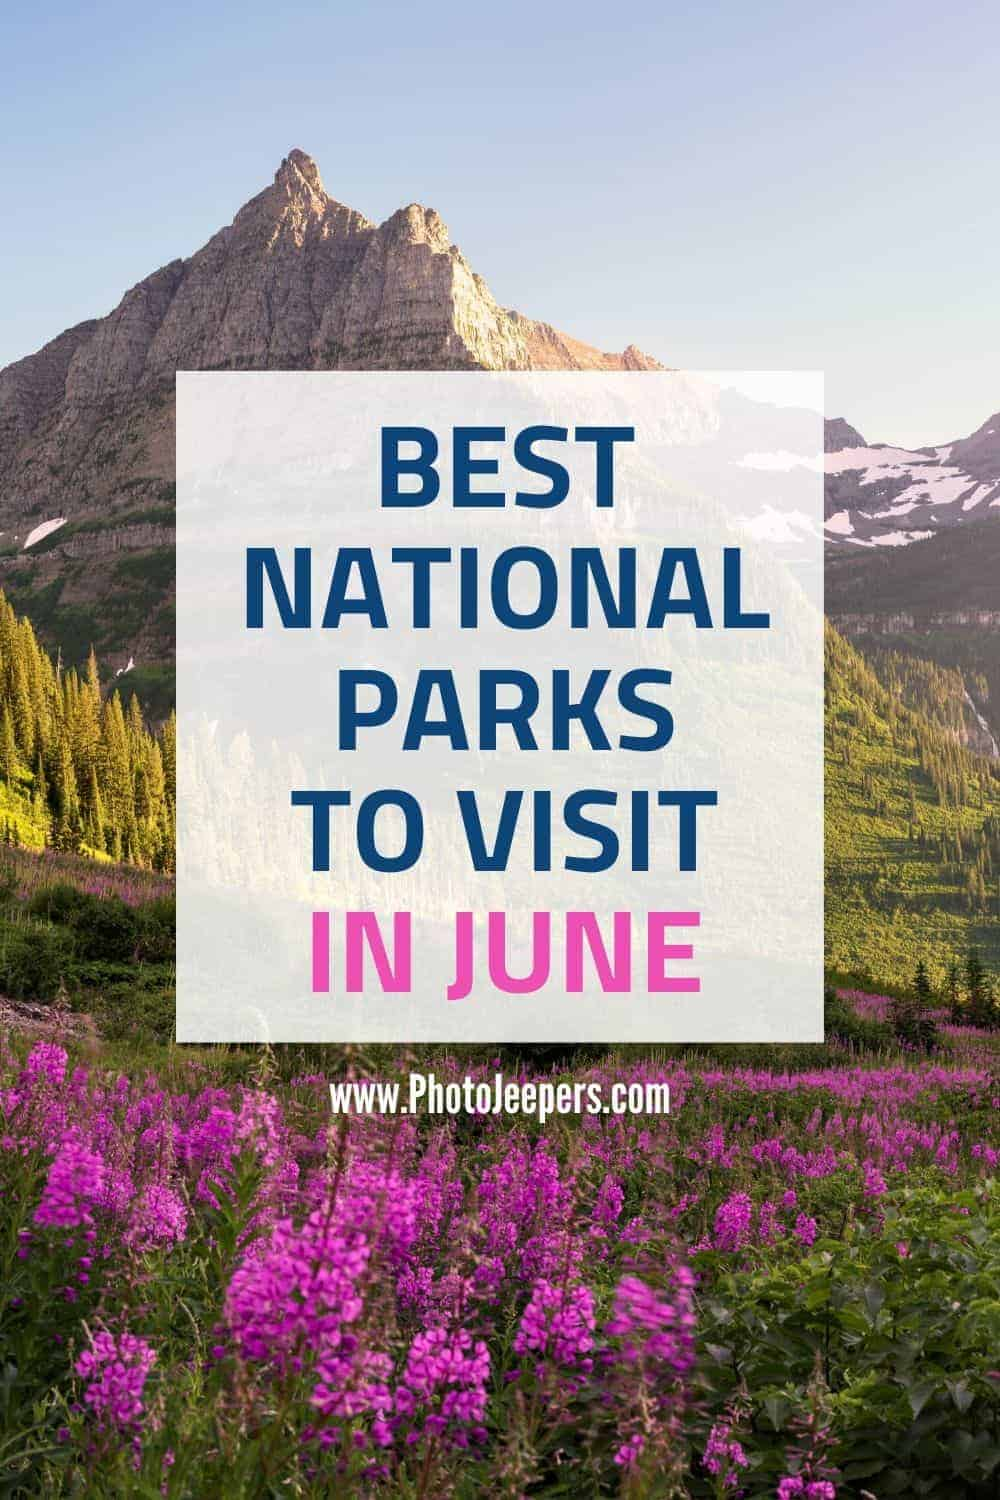 Summer vacation guide to the best US national parks to visit in June. Enjoy the beauty of nature and outdoor activities on a trip to US national parks in June. #nationalparks #summervacation #familytravel #photojeepers